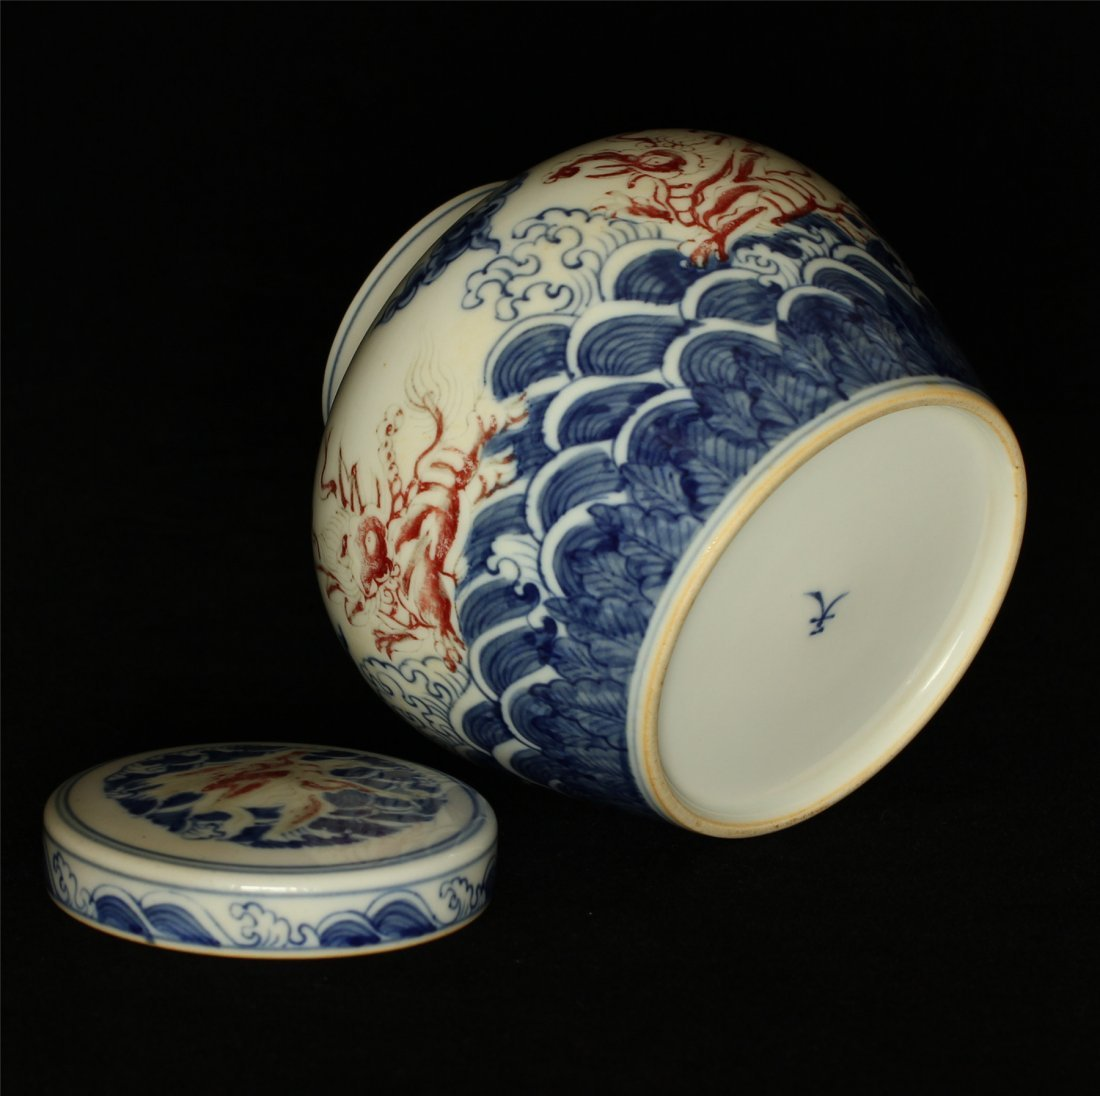 Blue and white & underglaze red porcelain jar of Tian - 7